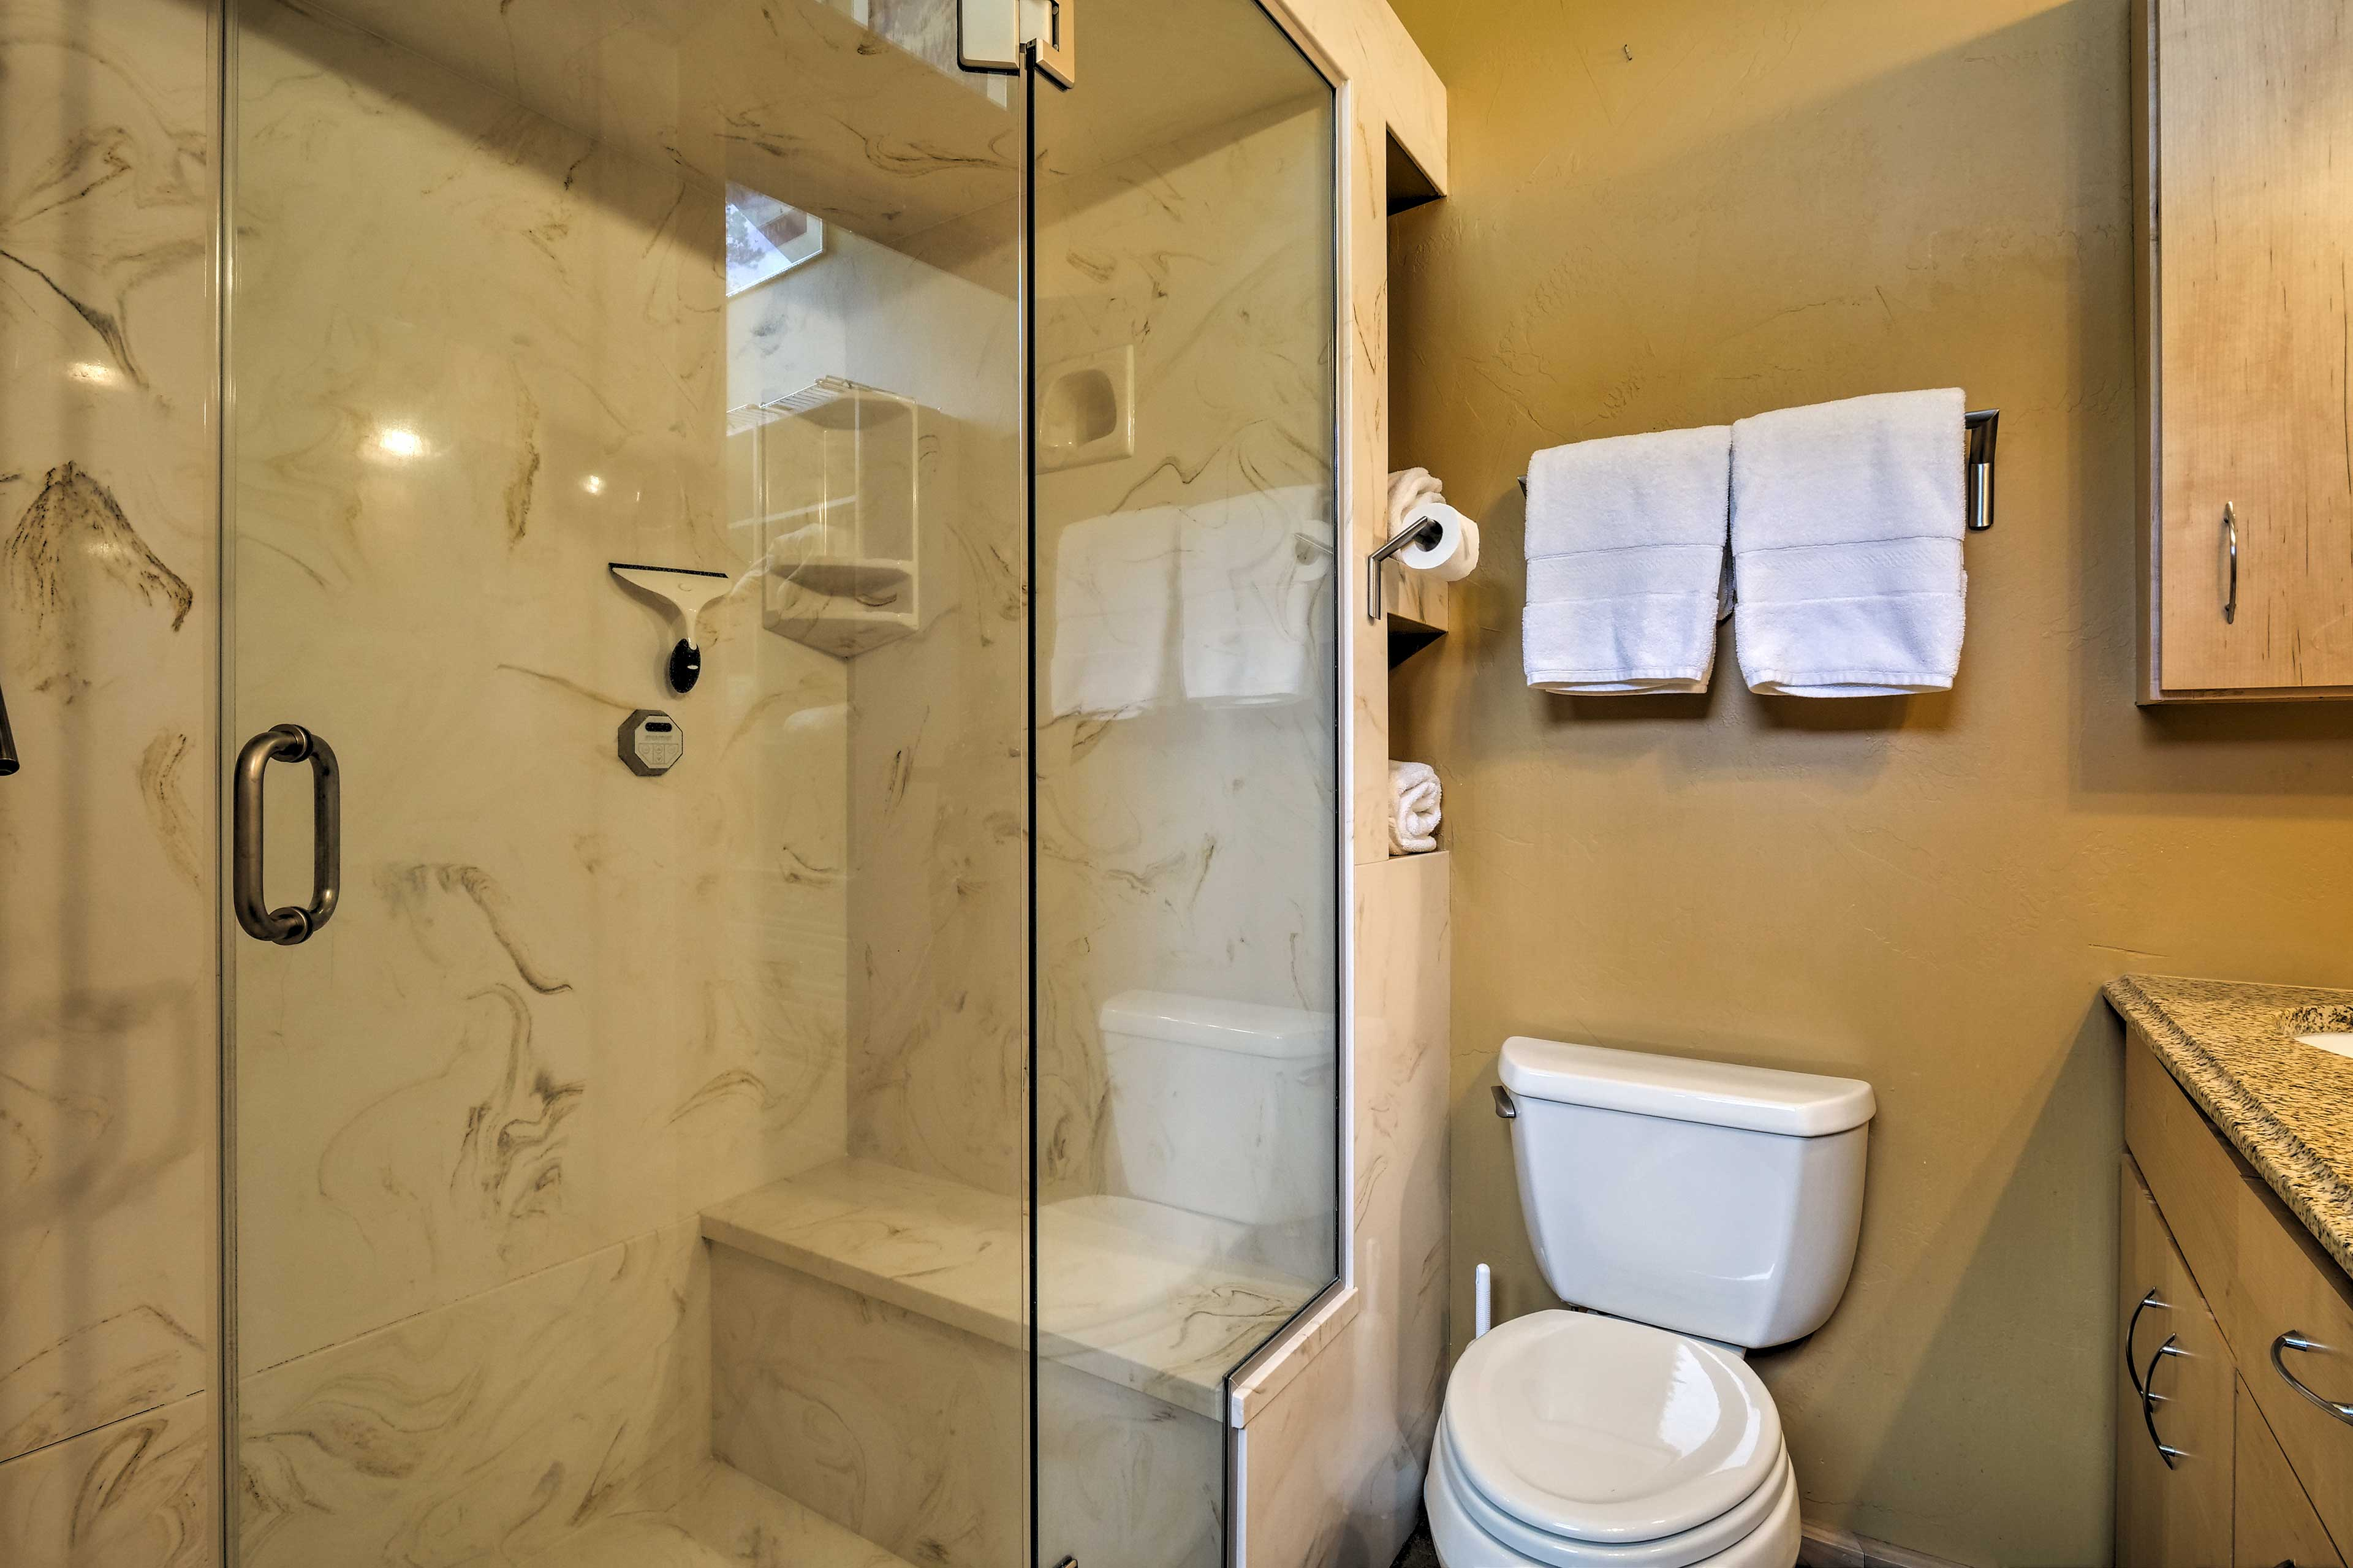 A second full bathroom is stocked with fresh towels.